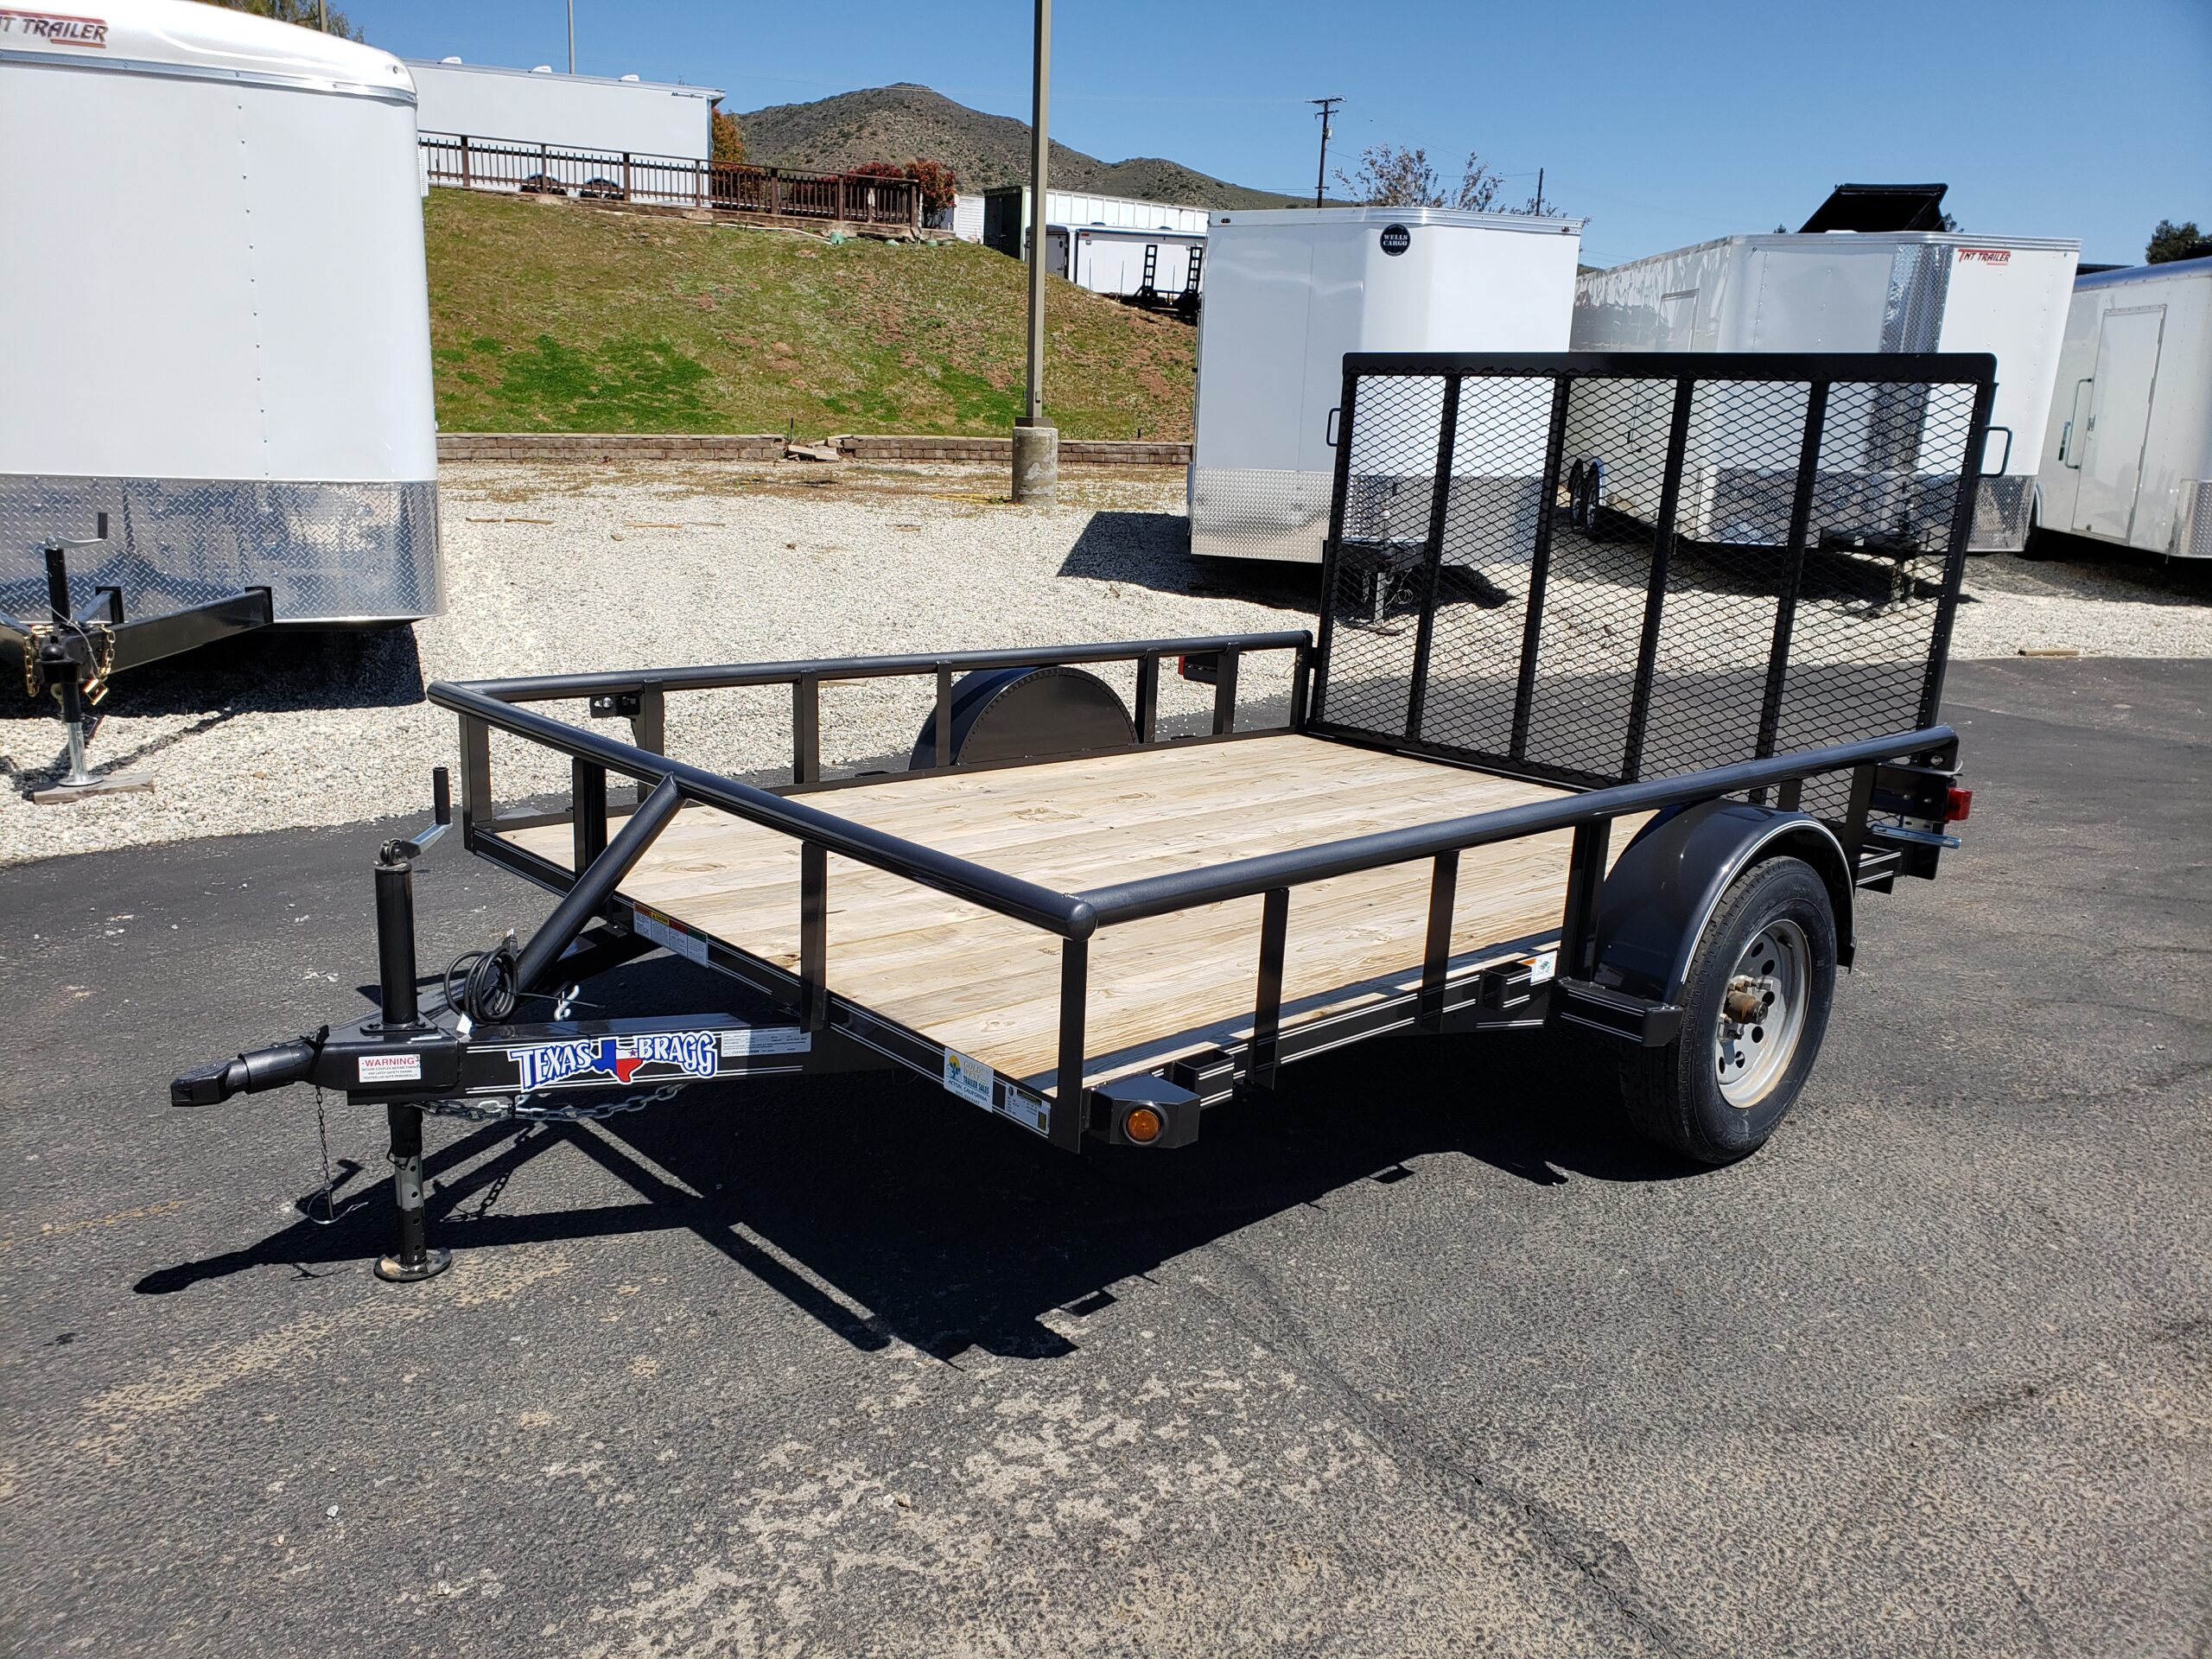 Texas Bragg 7x10 Ramp - Driver side front 3/4 view